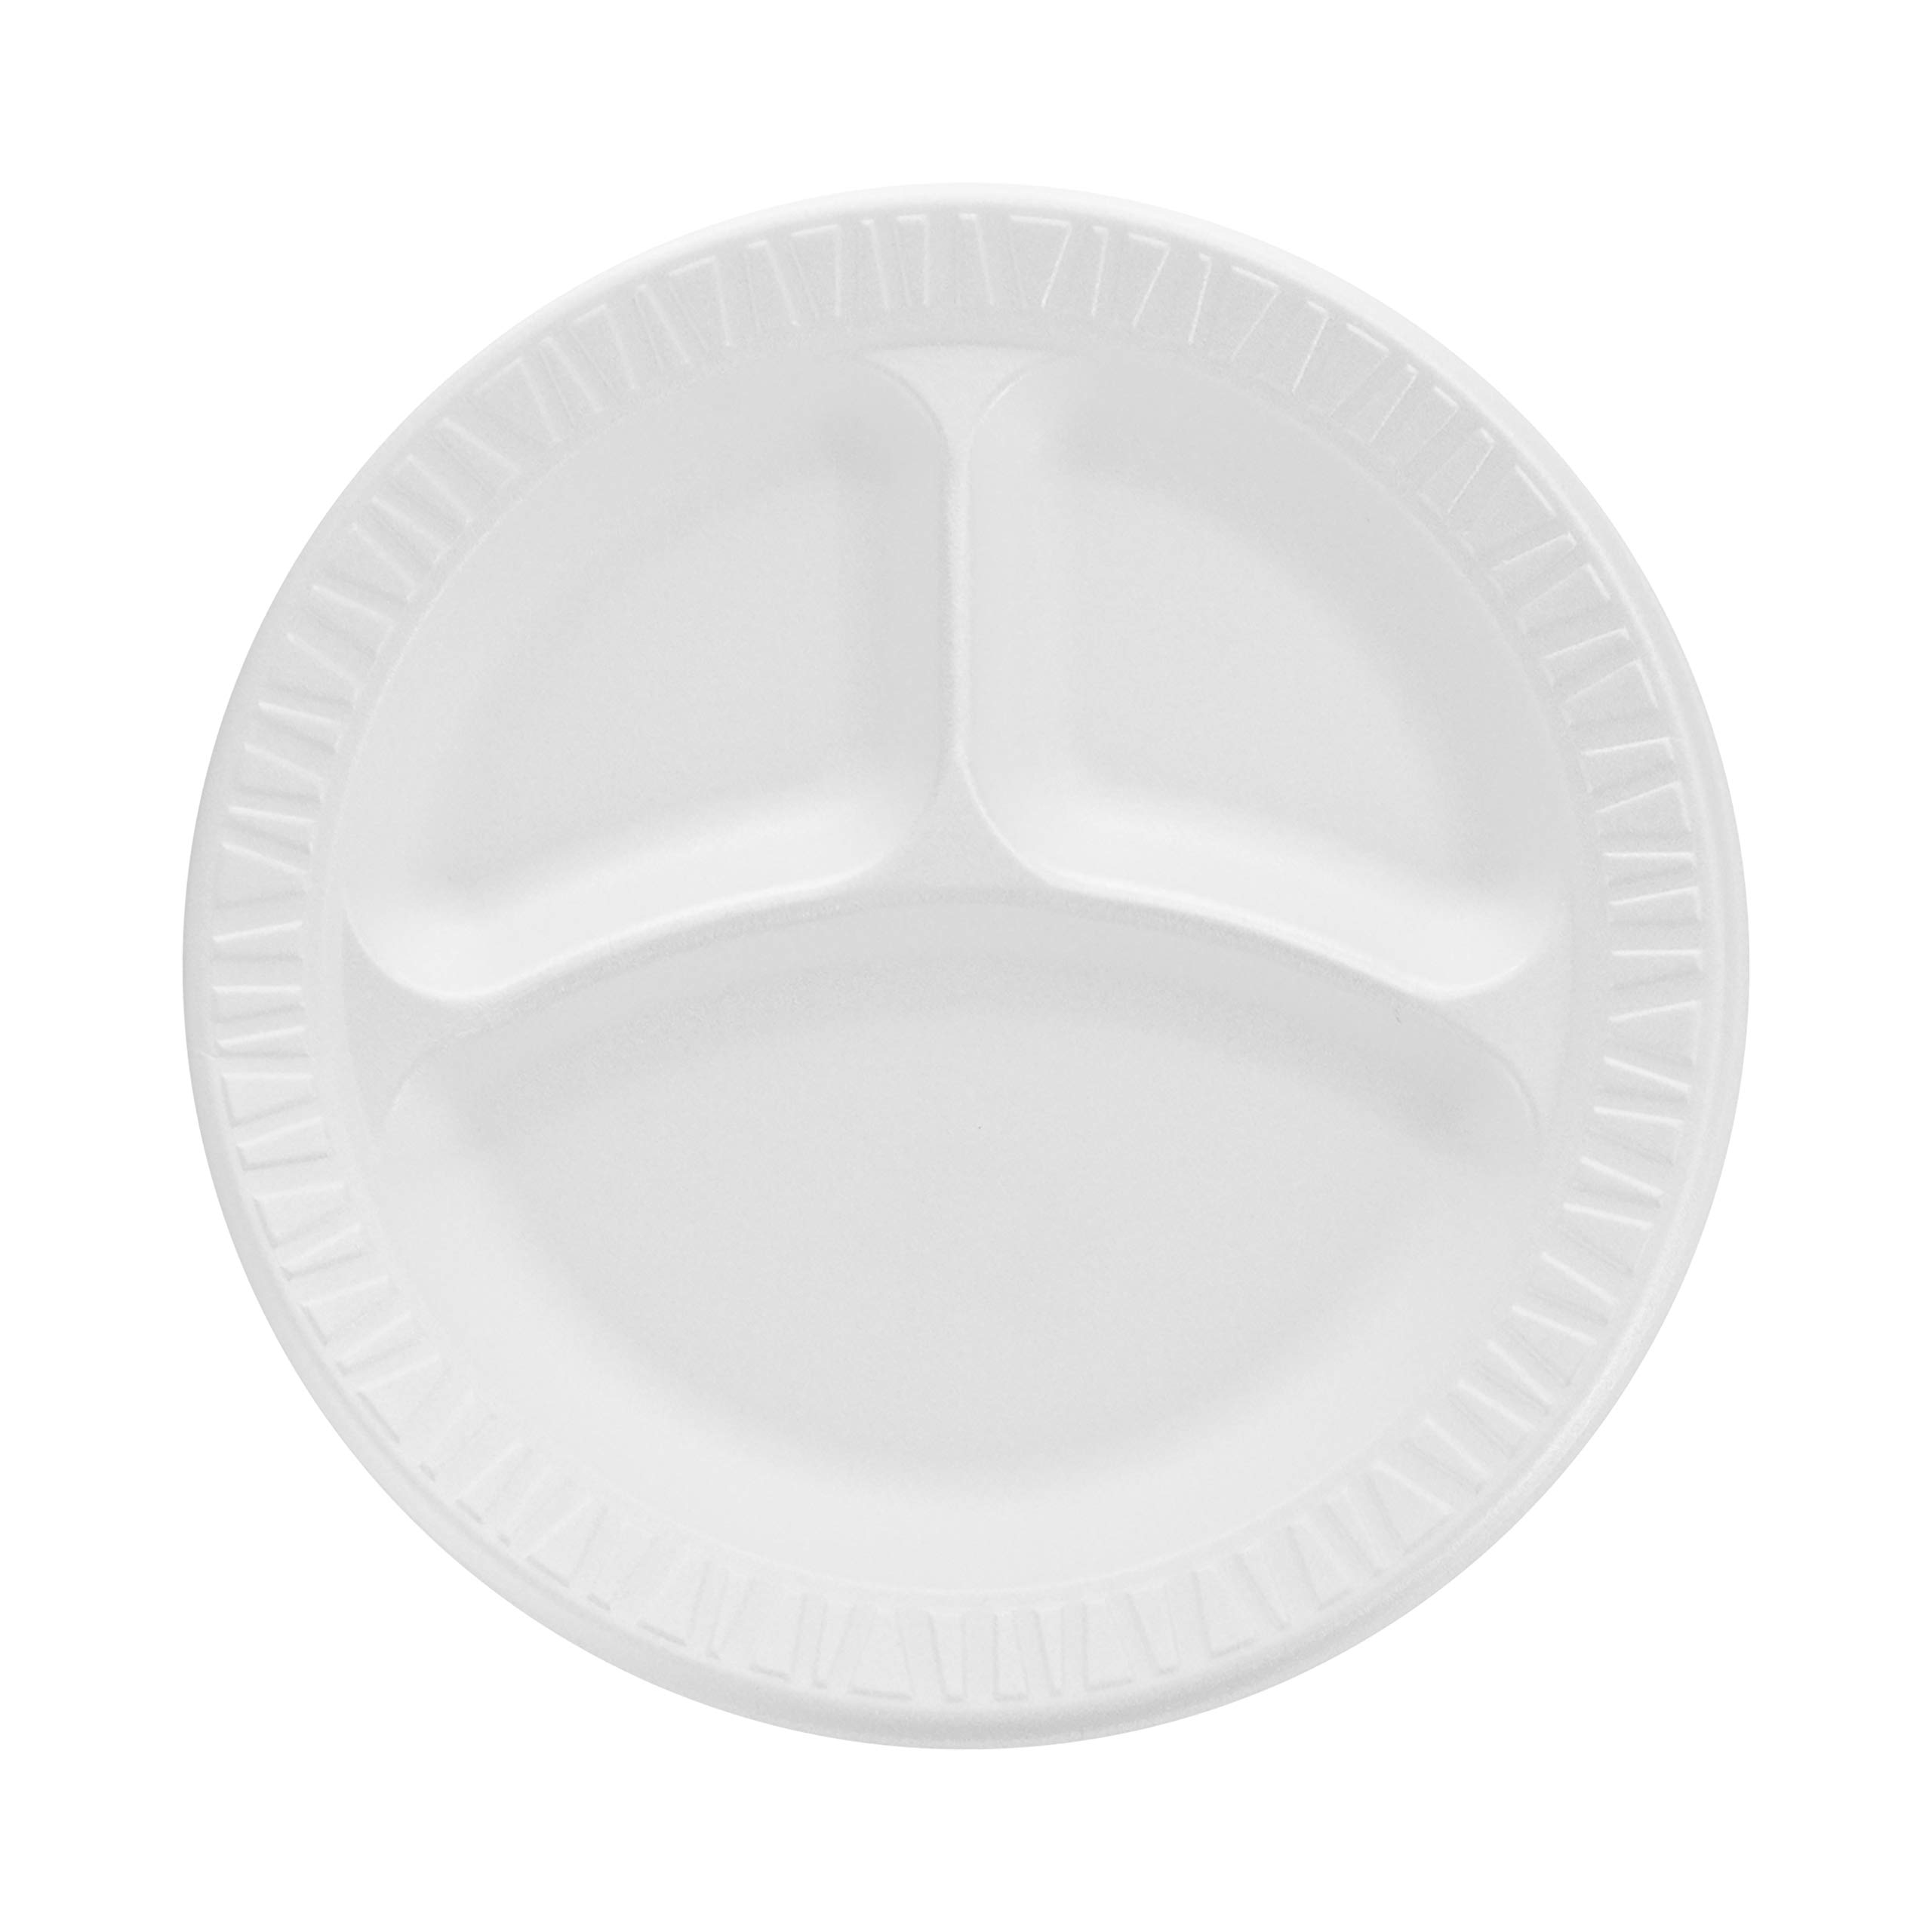 Dart 9CPWCR 9 in White Unlaminated Foam 3 Comp Plate (Case of 500) by Solo Foodservice